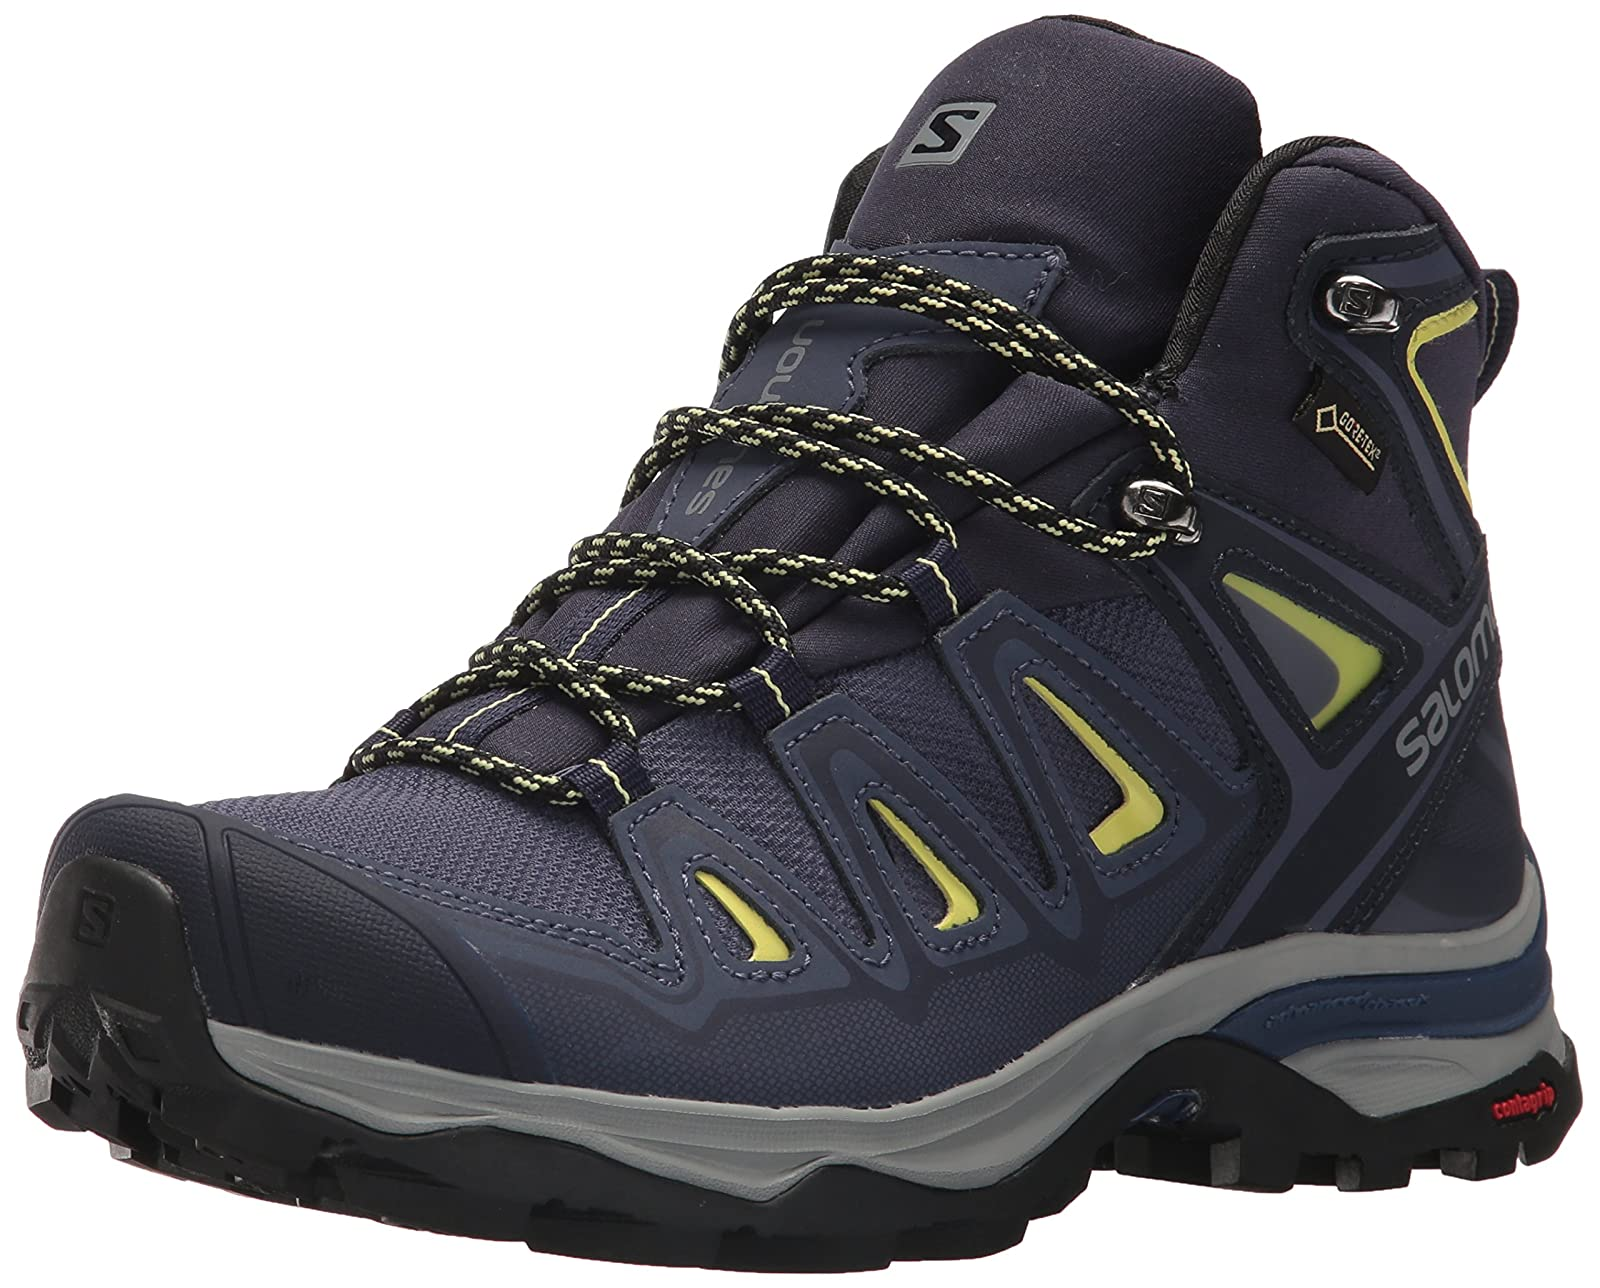 Salomon Women's X Ultra 3 Mid GTX W Hiking Boot 401346 - 9